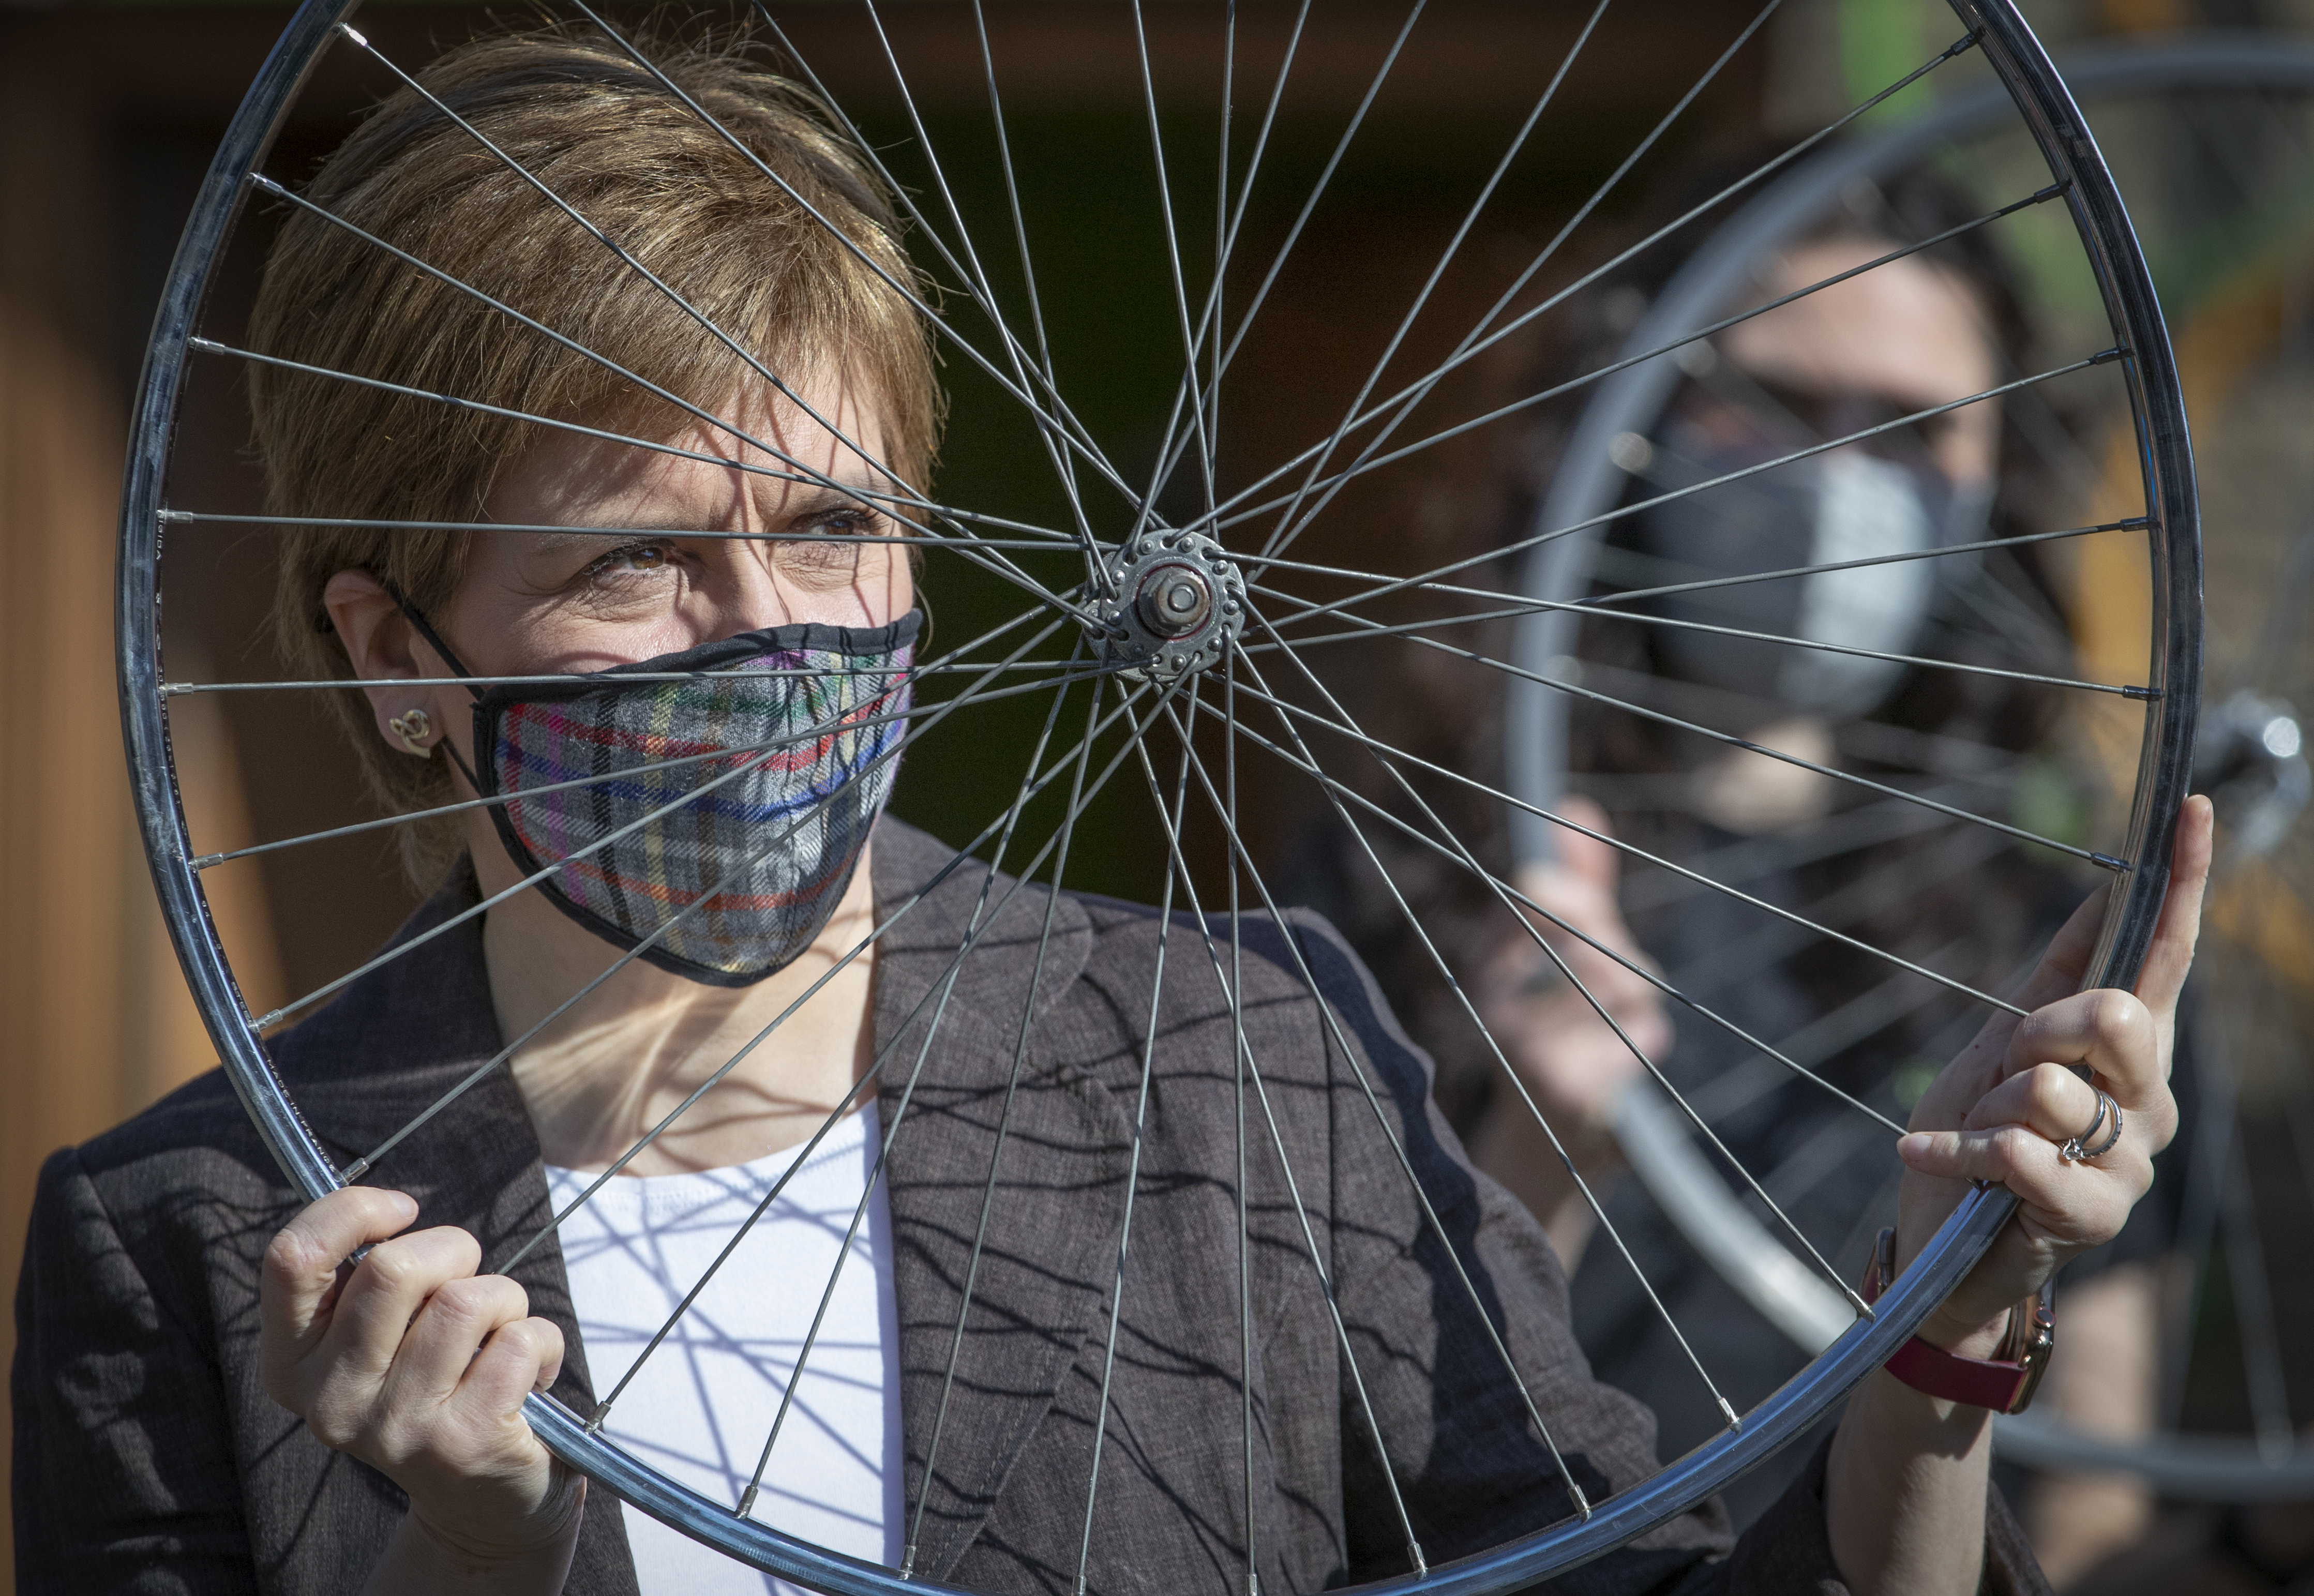 <p>First Minister Nicola Sturgeon, leader of the Scottish National Party (SNP), at the Bike for Good Glasgow South Community Hub during campaigning for the Scottish Parliamentary election. Picture date: Thursday April 22, 2021.</p>